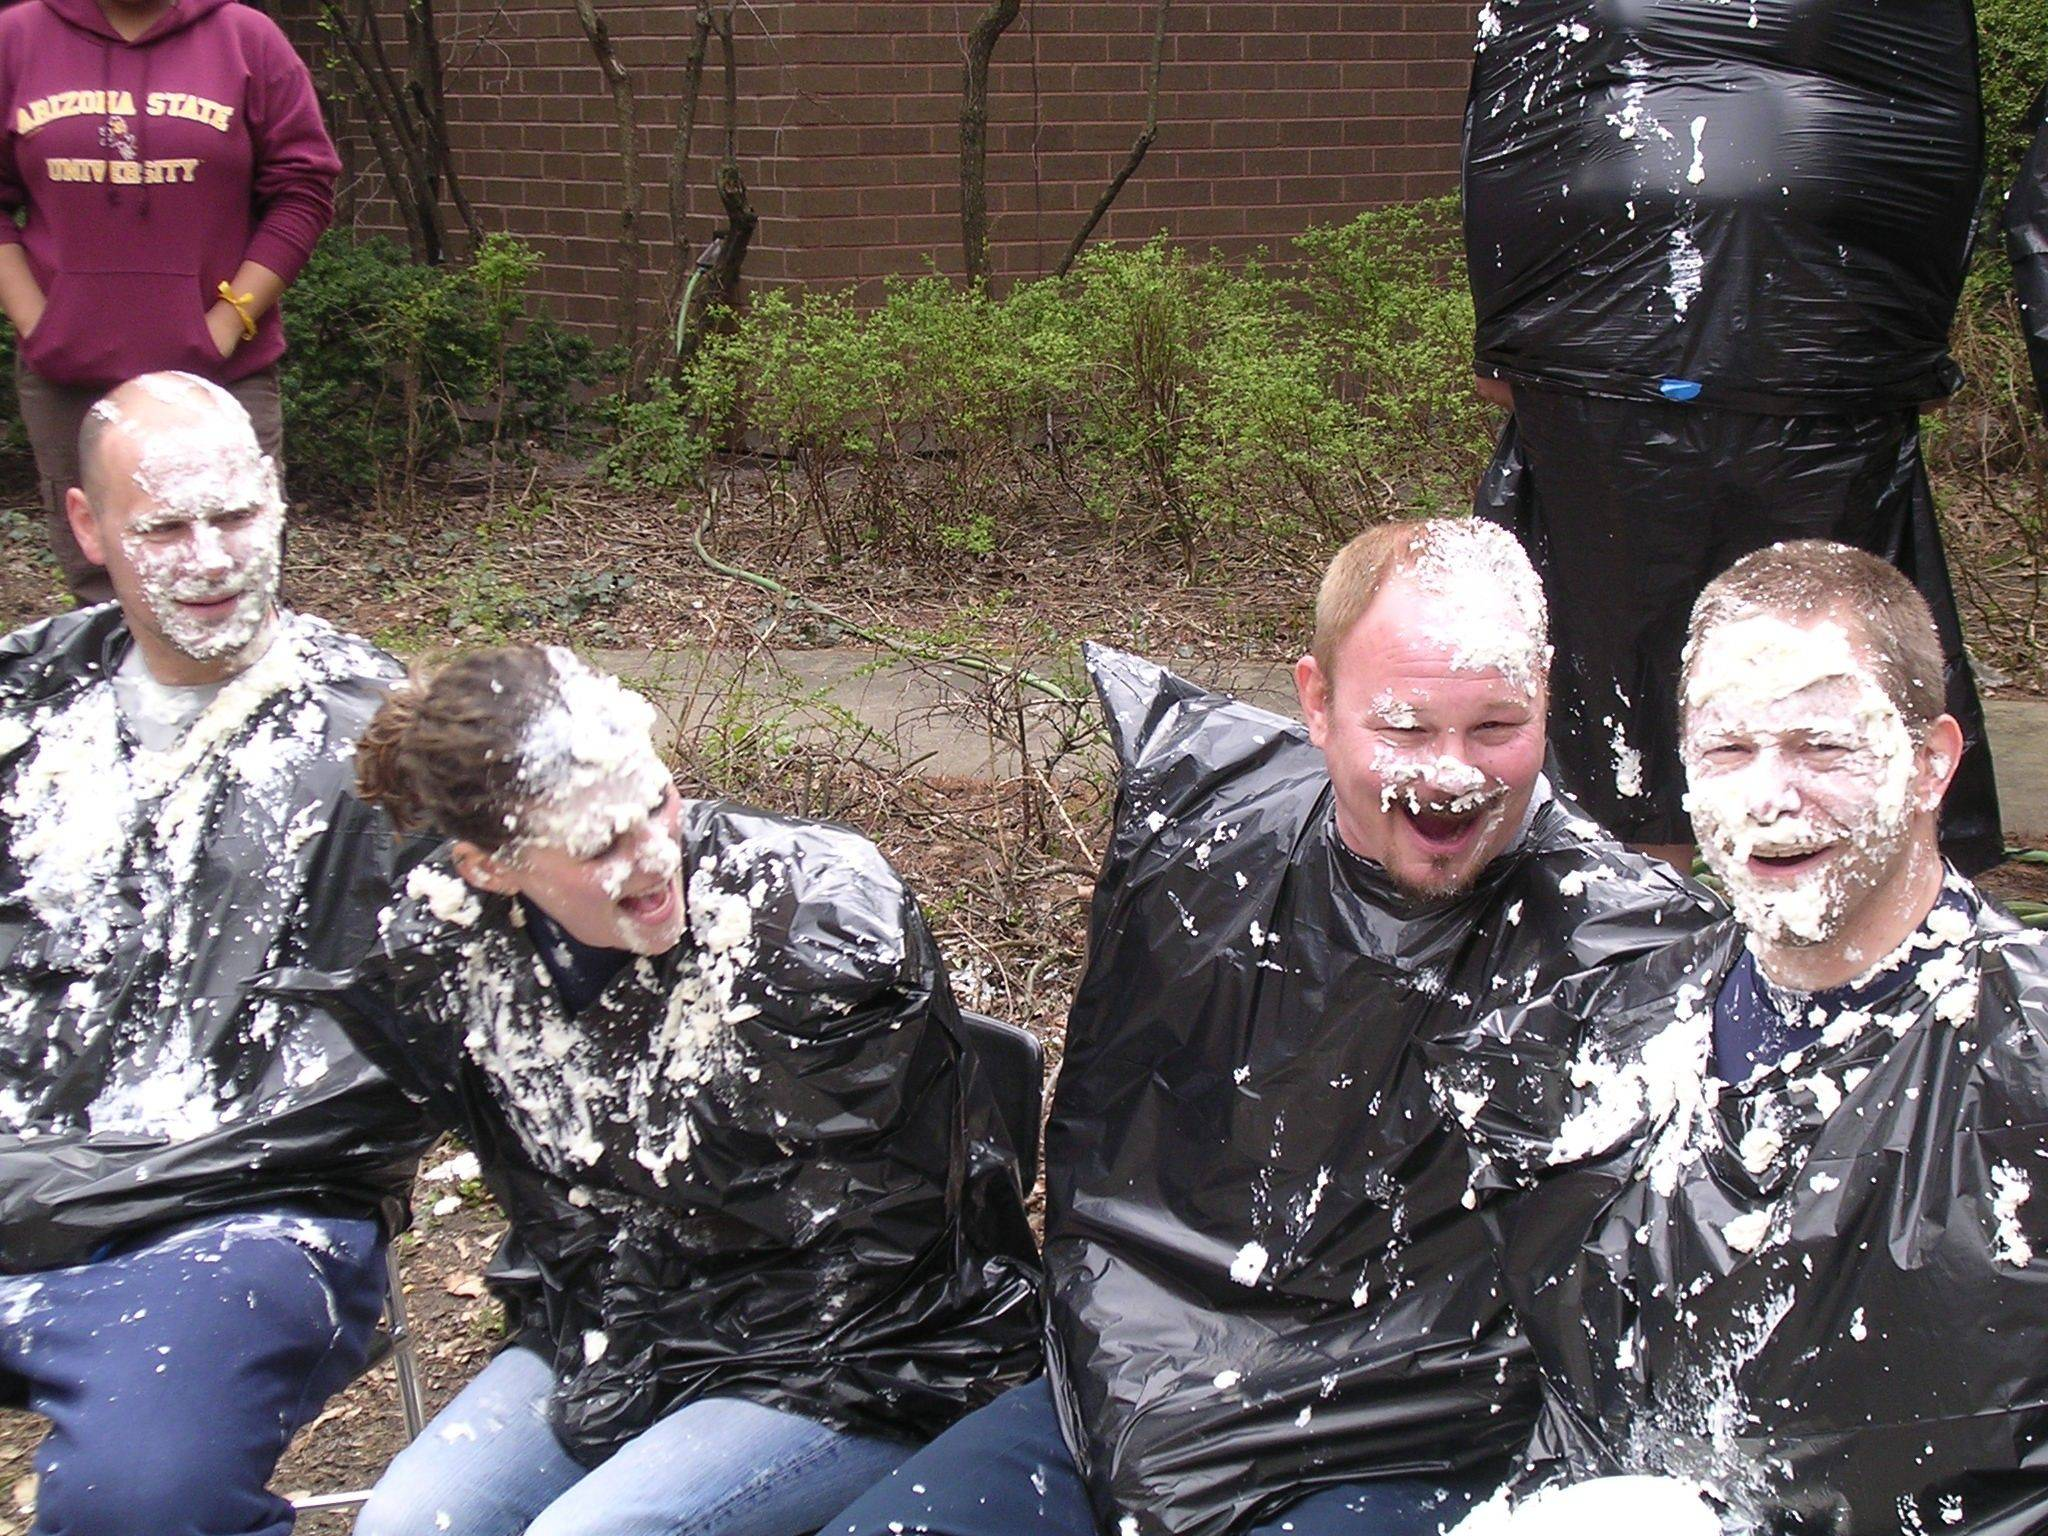 From left, Dean Carlson, Julie Deka, Jay Benz and Rob Hartwig smile through the whipped cream.